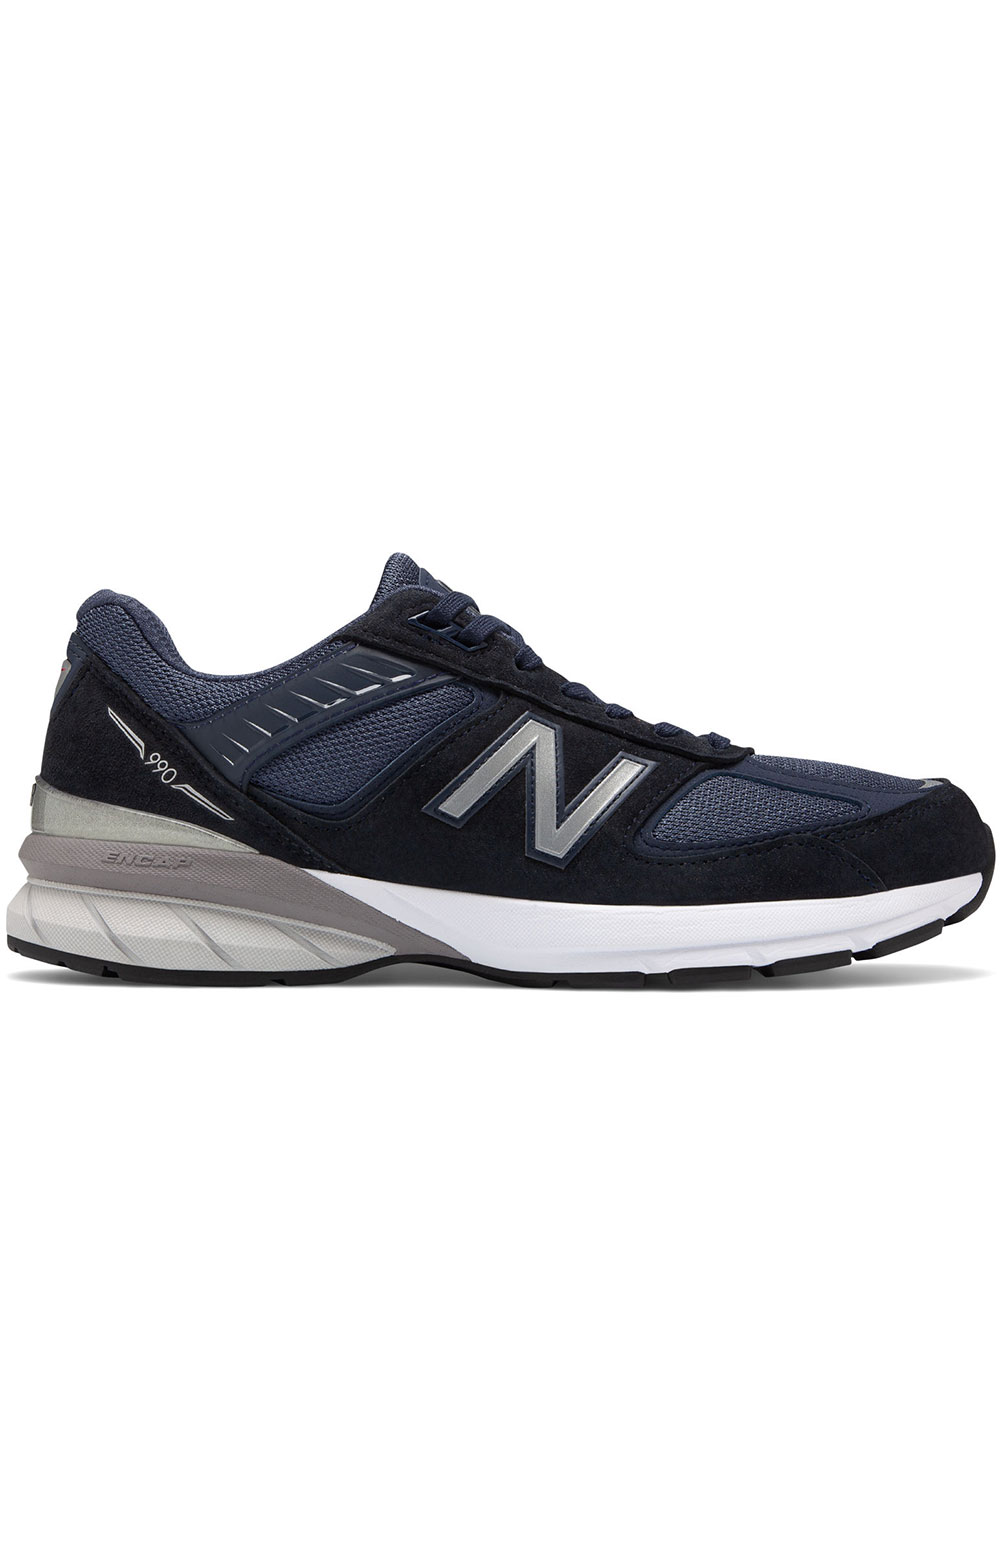 (M990NV5) Made in USA 990v5 Shoe - Navy/Silver